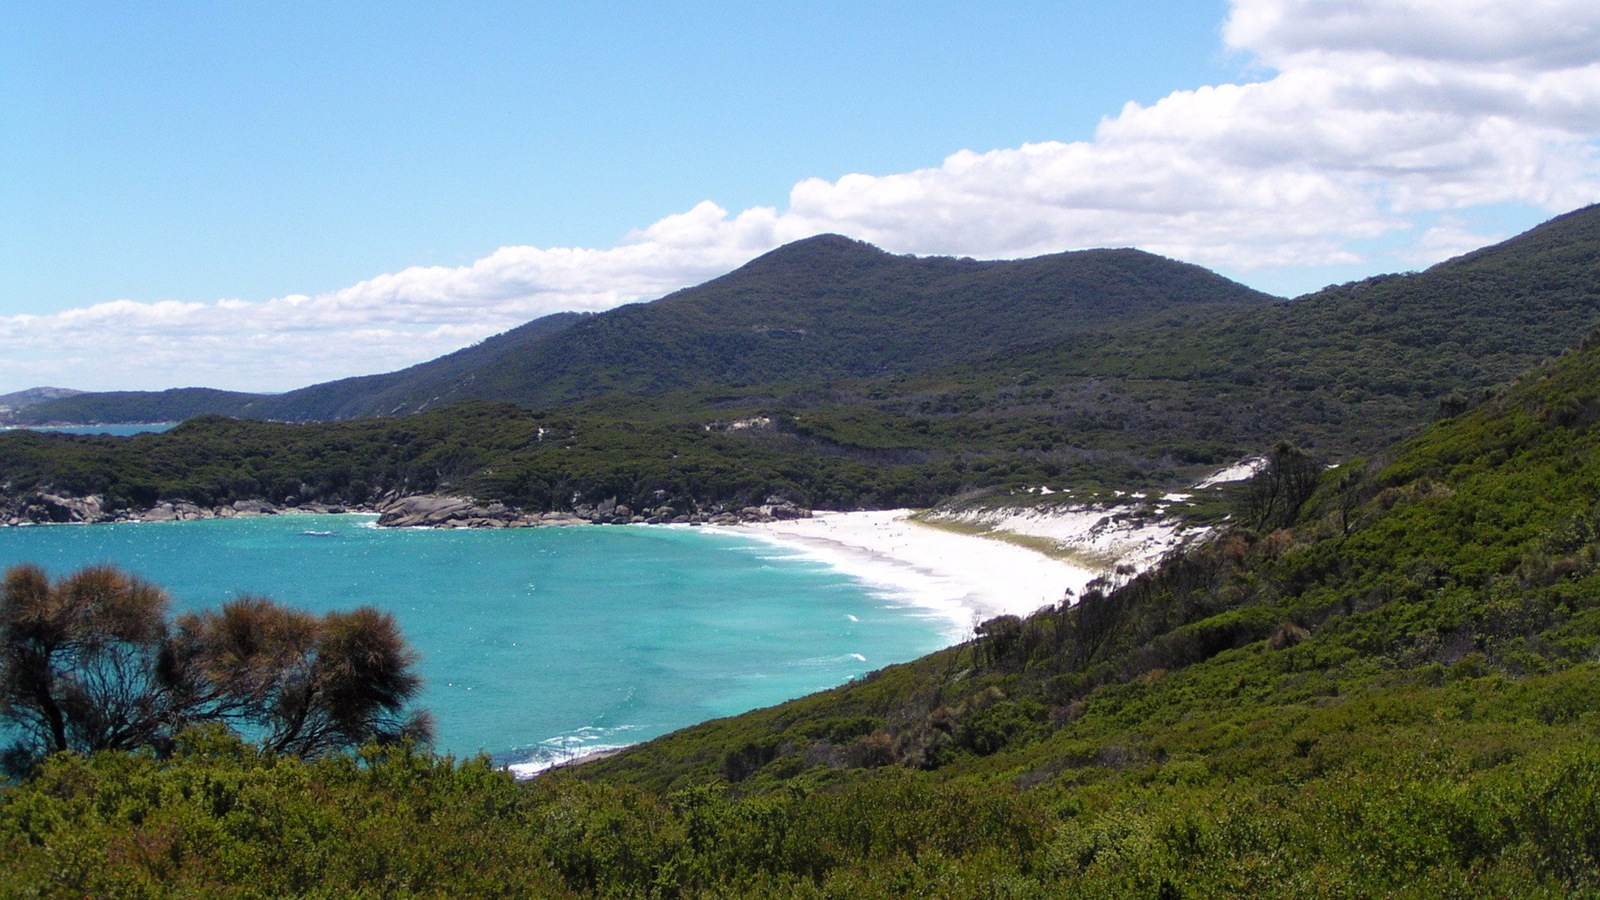 Wilsons Promontory view